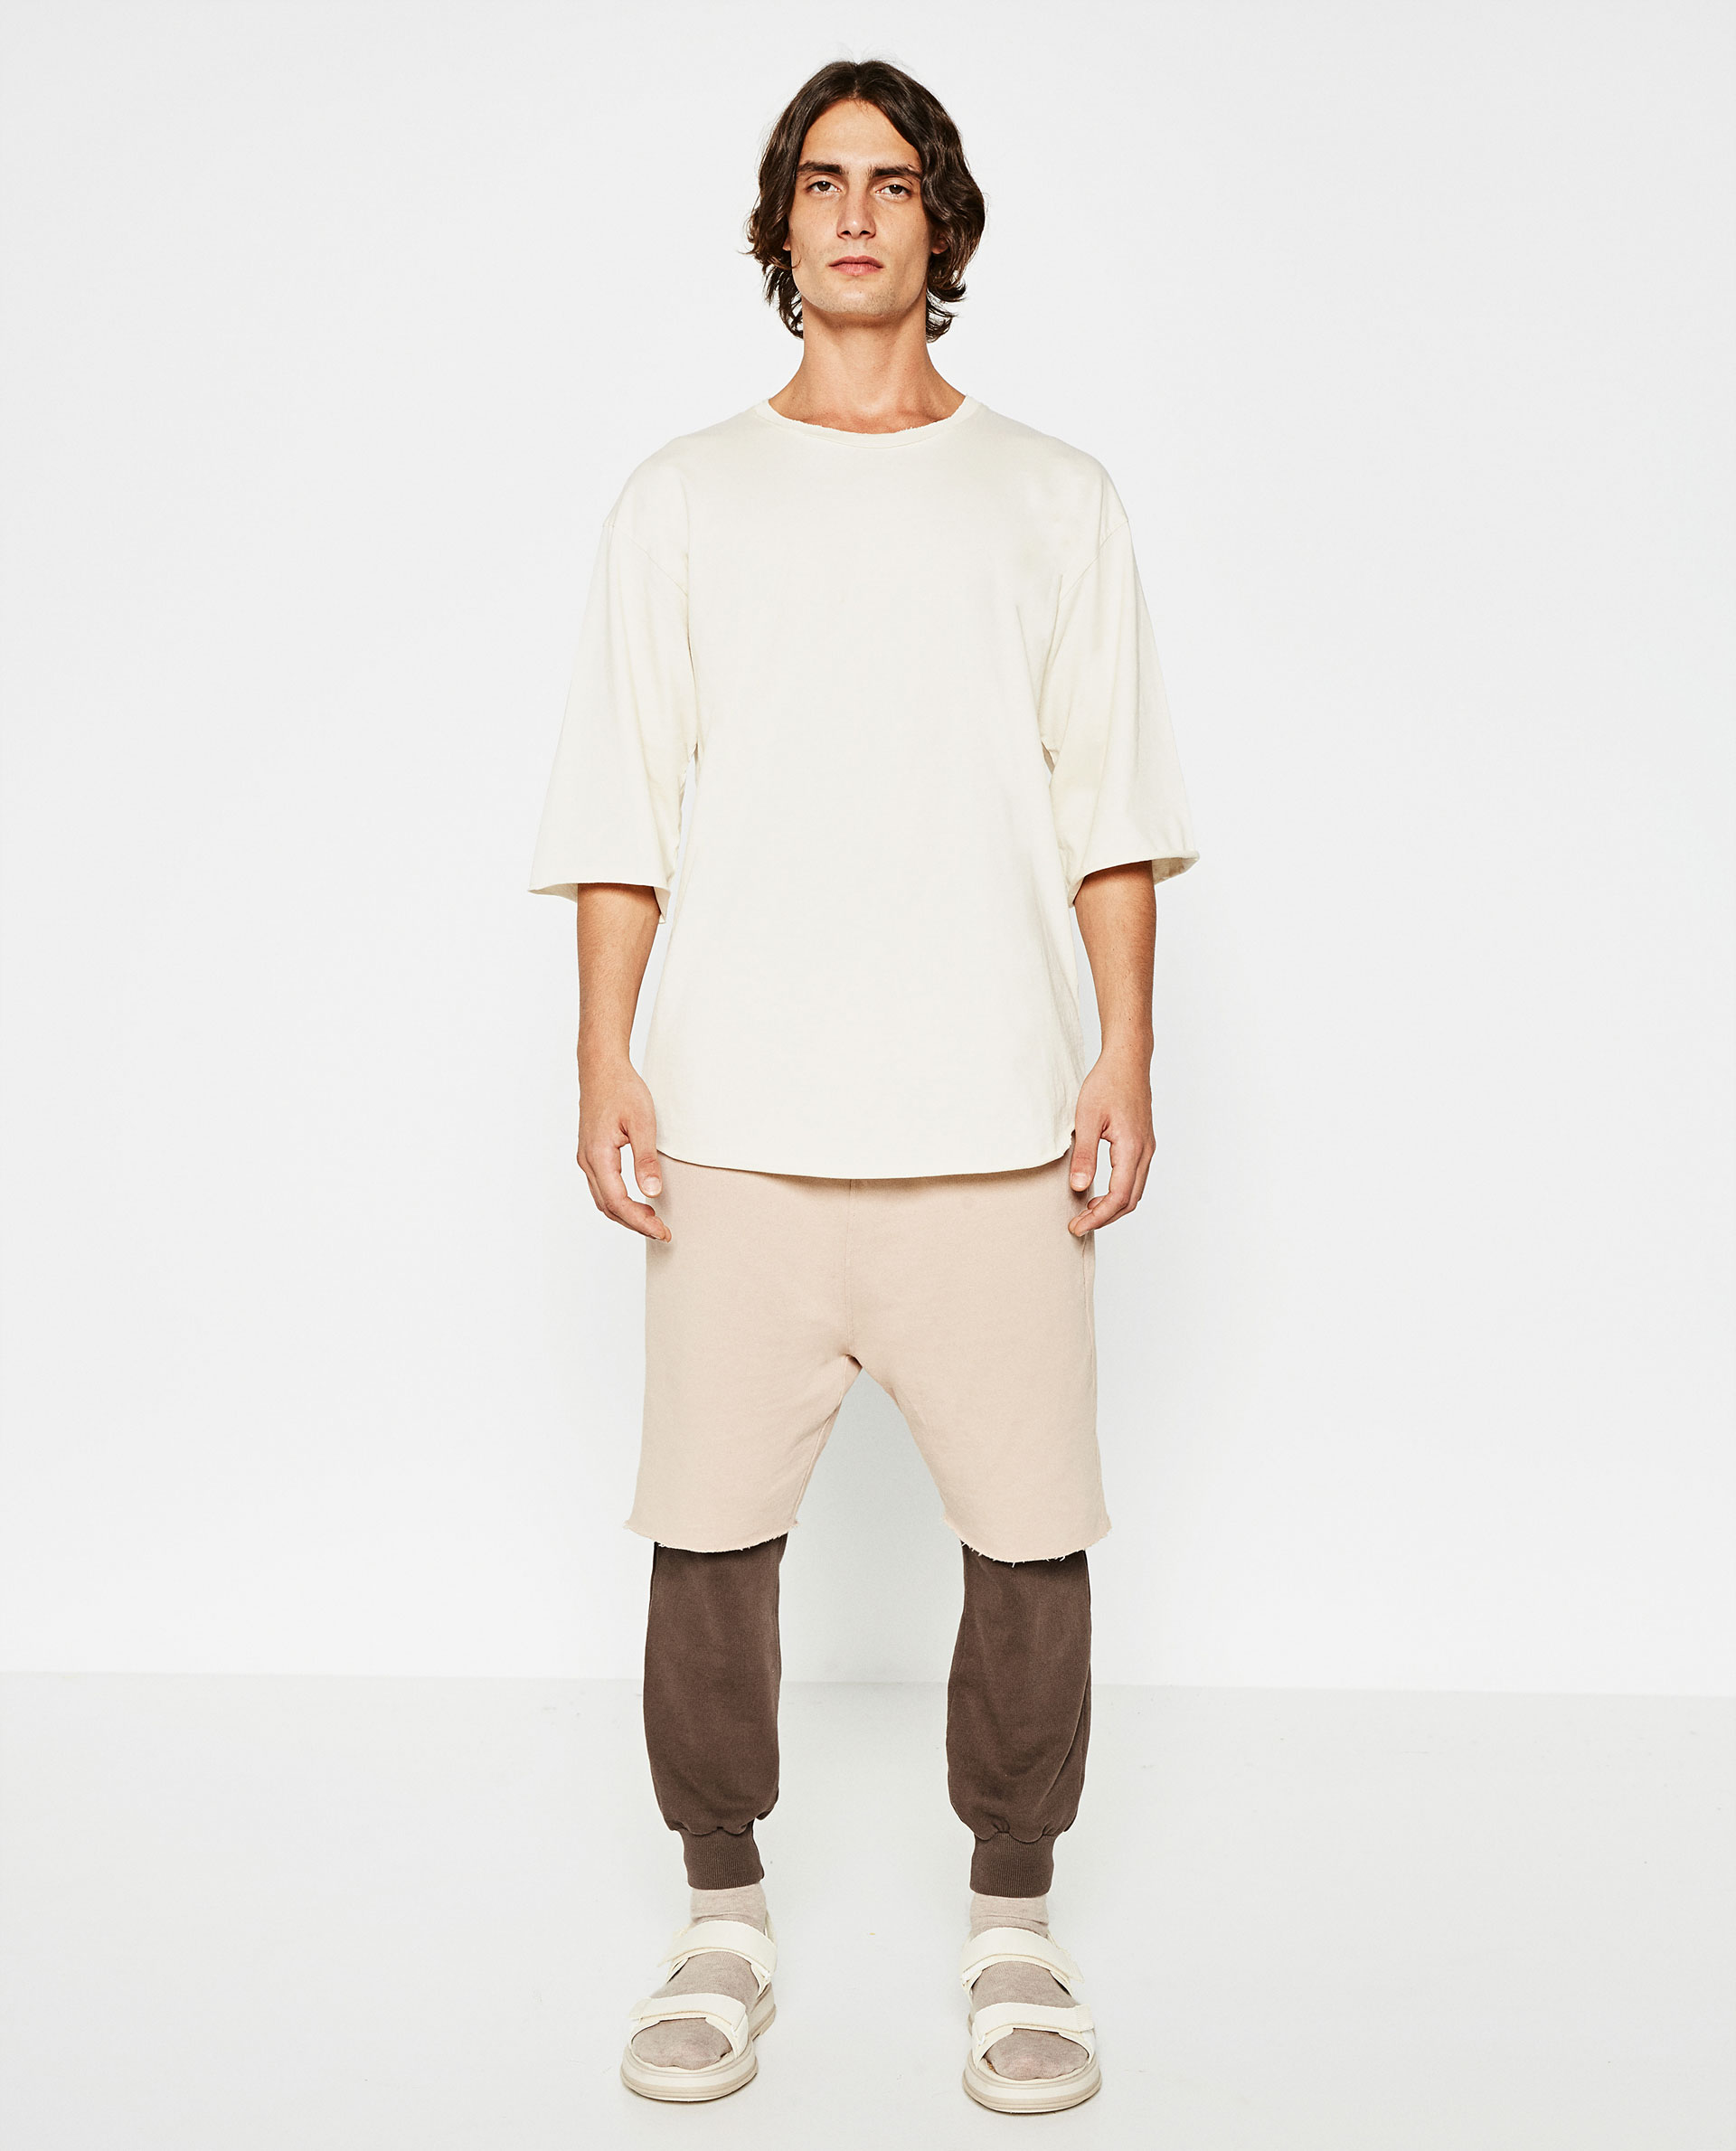 53016c01355 Zara s Streetwise Collection accused of copying Kanye West s YEEZY ...